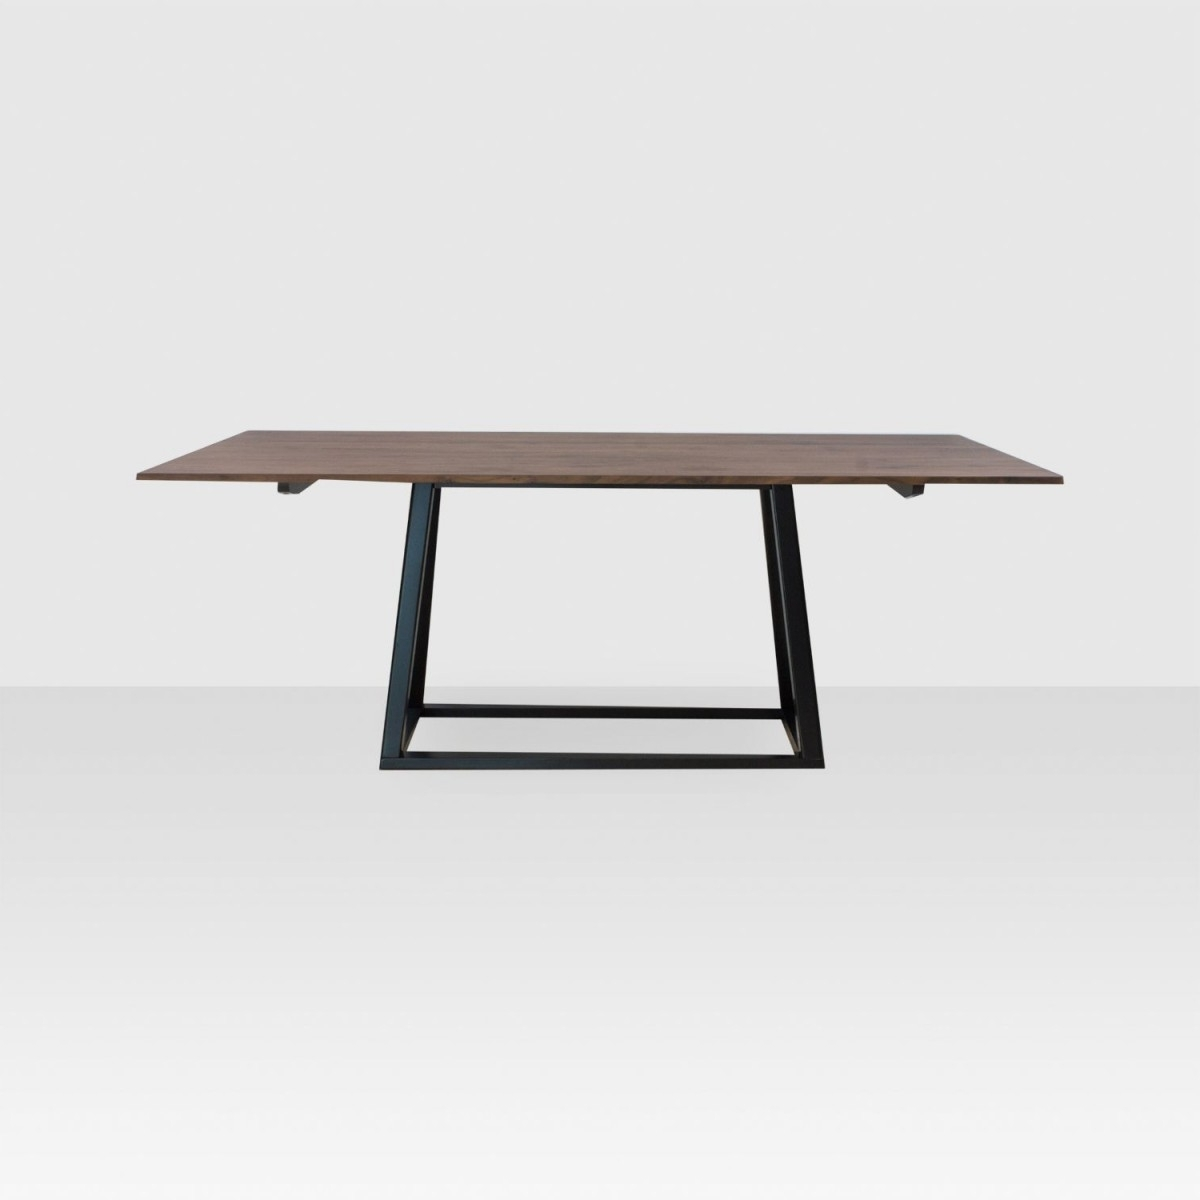 Phoenix Dining Table – Elte Market For Popular Phoenix Dining Tables (View 15 of 25)